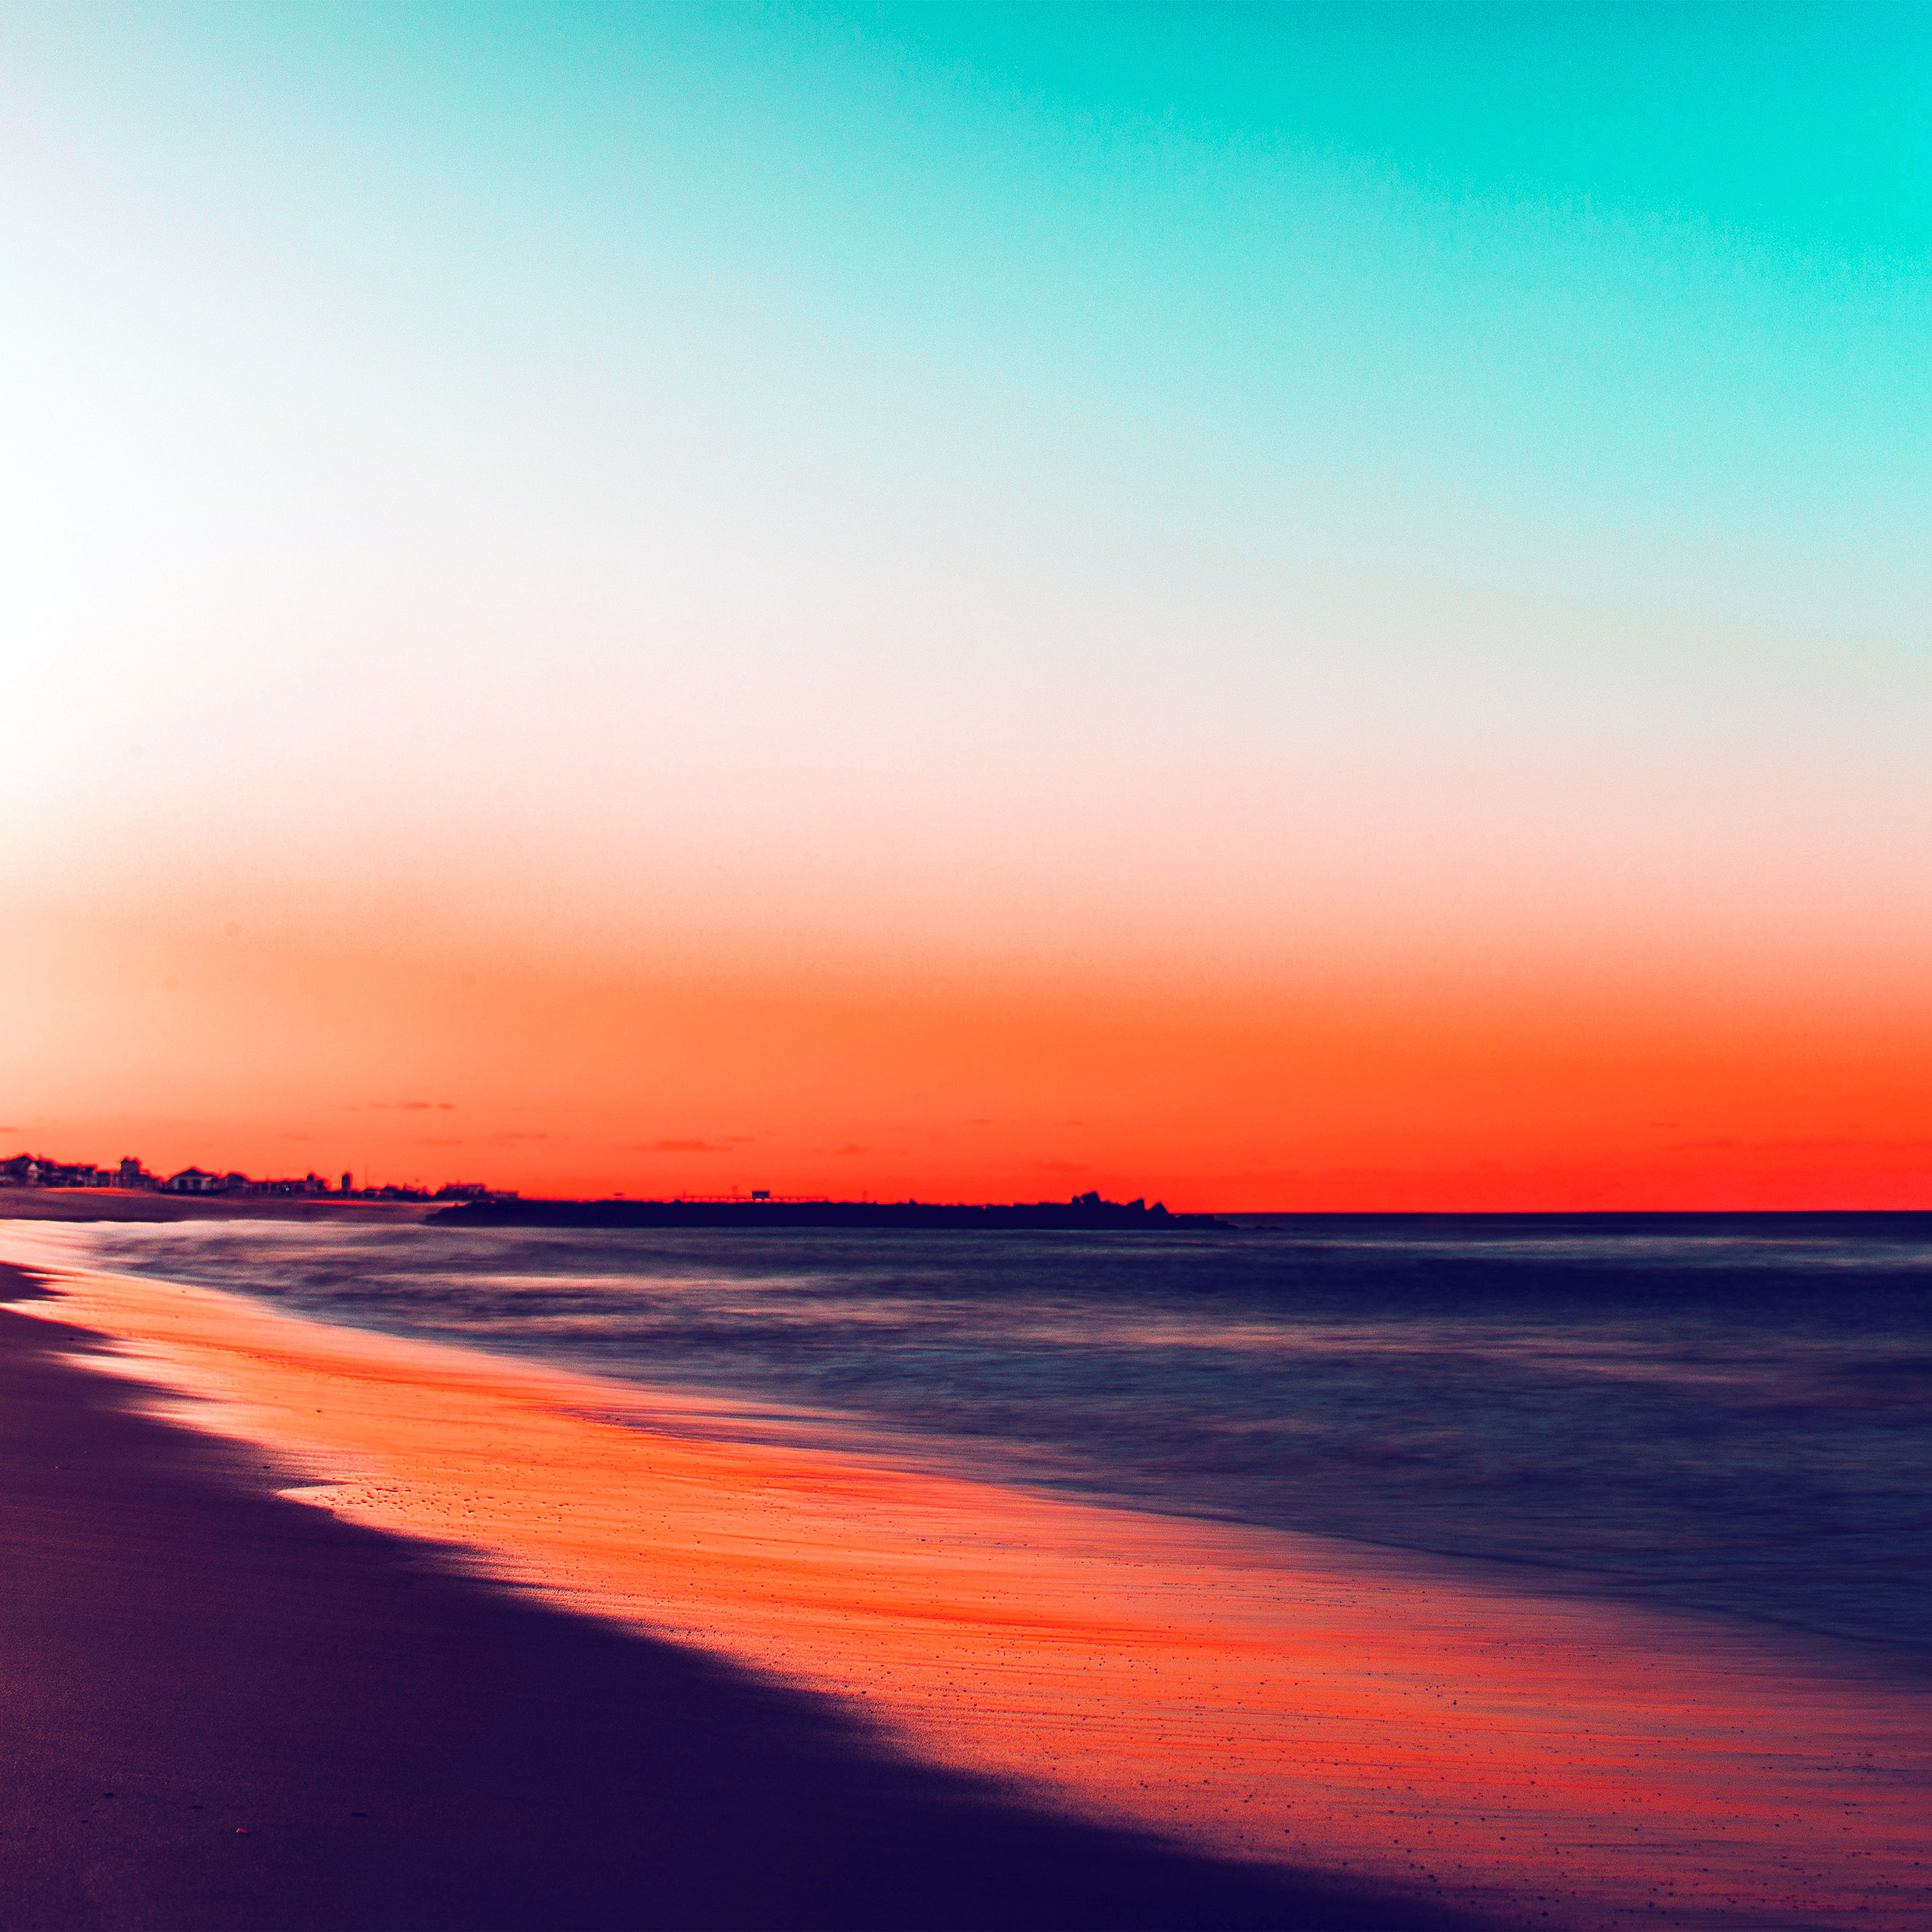 Aesthetic Beach Sunset Wallpapers